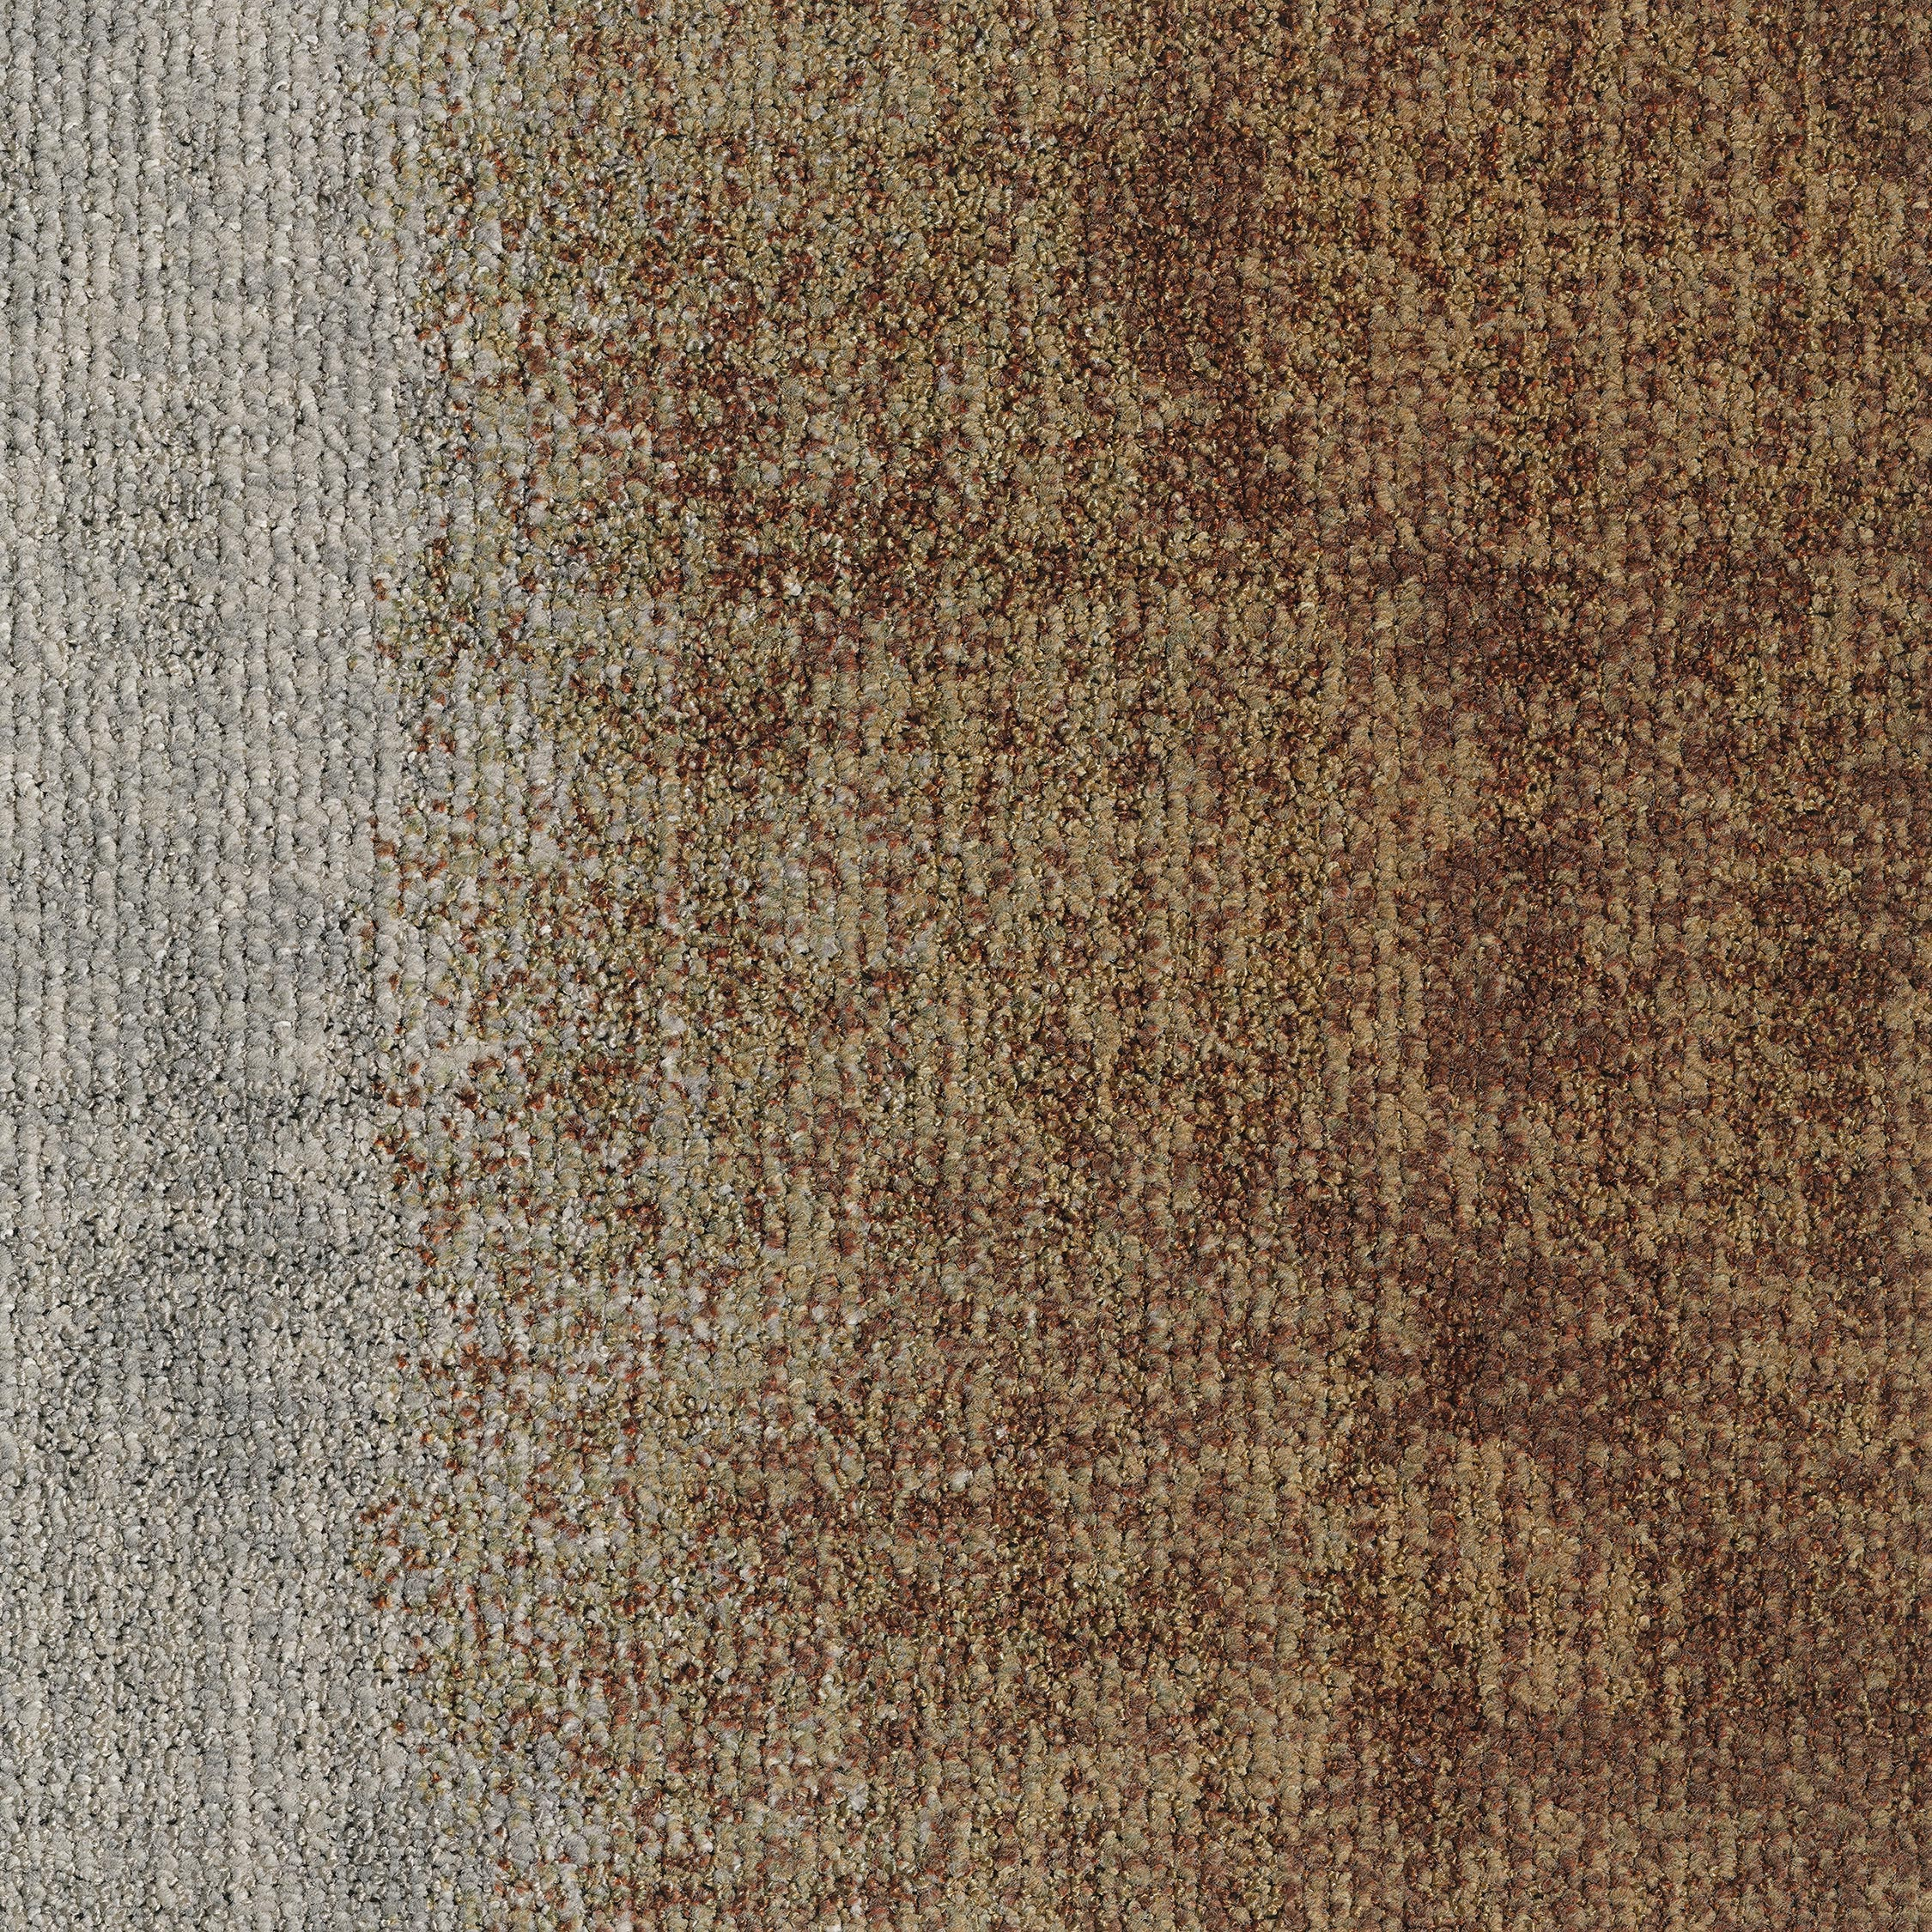 ReForm Transition Mix Leaf warm grey/golden 5595